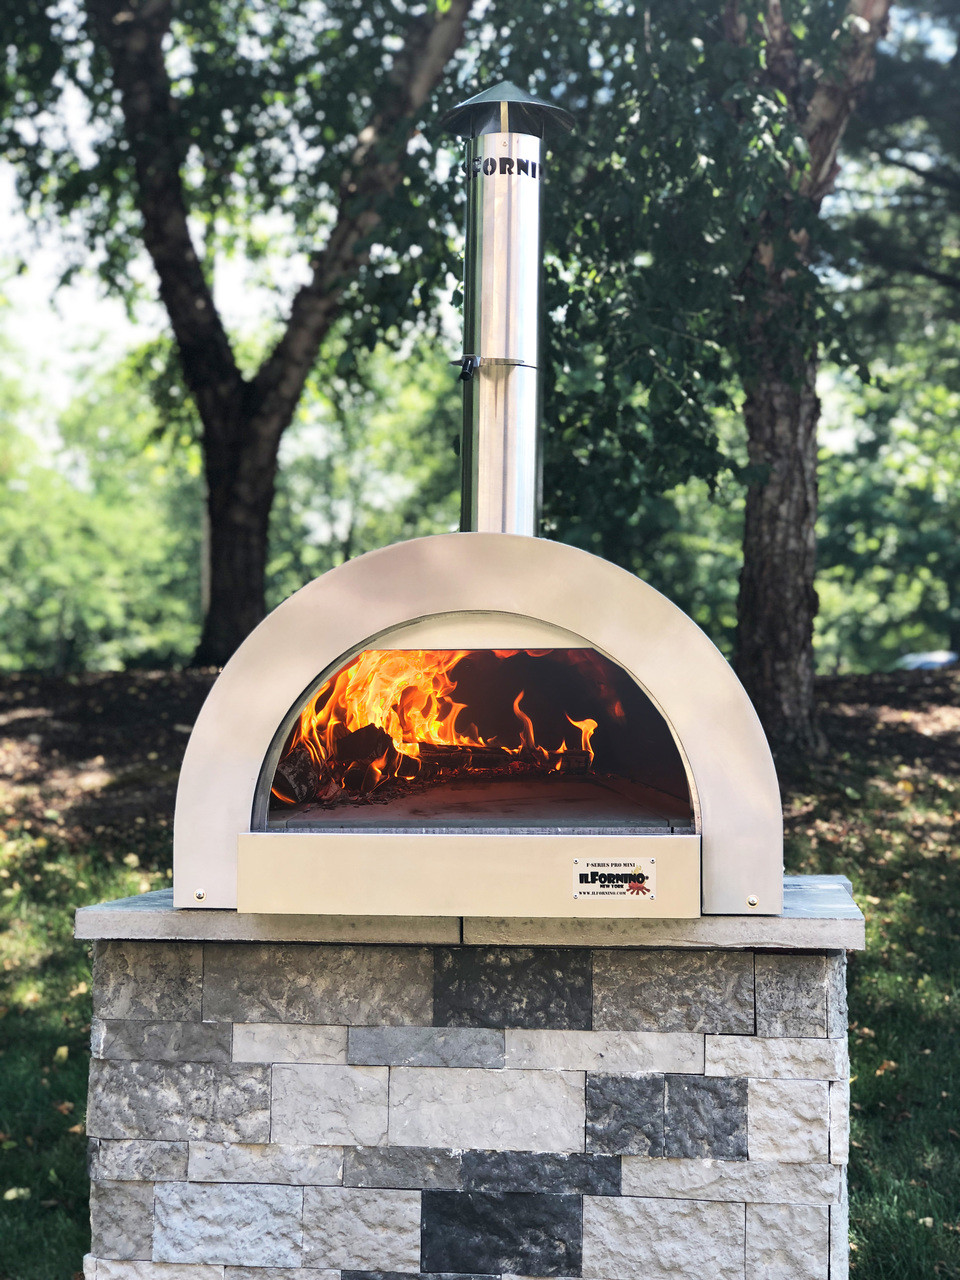 ilFornino® Fiamma Rossa– Media Stainless Steel Wood Burning Pizza Oven with Adjustable Height Stand